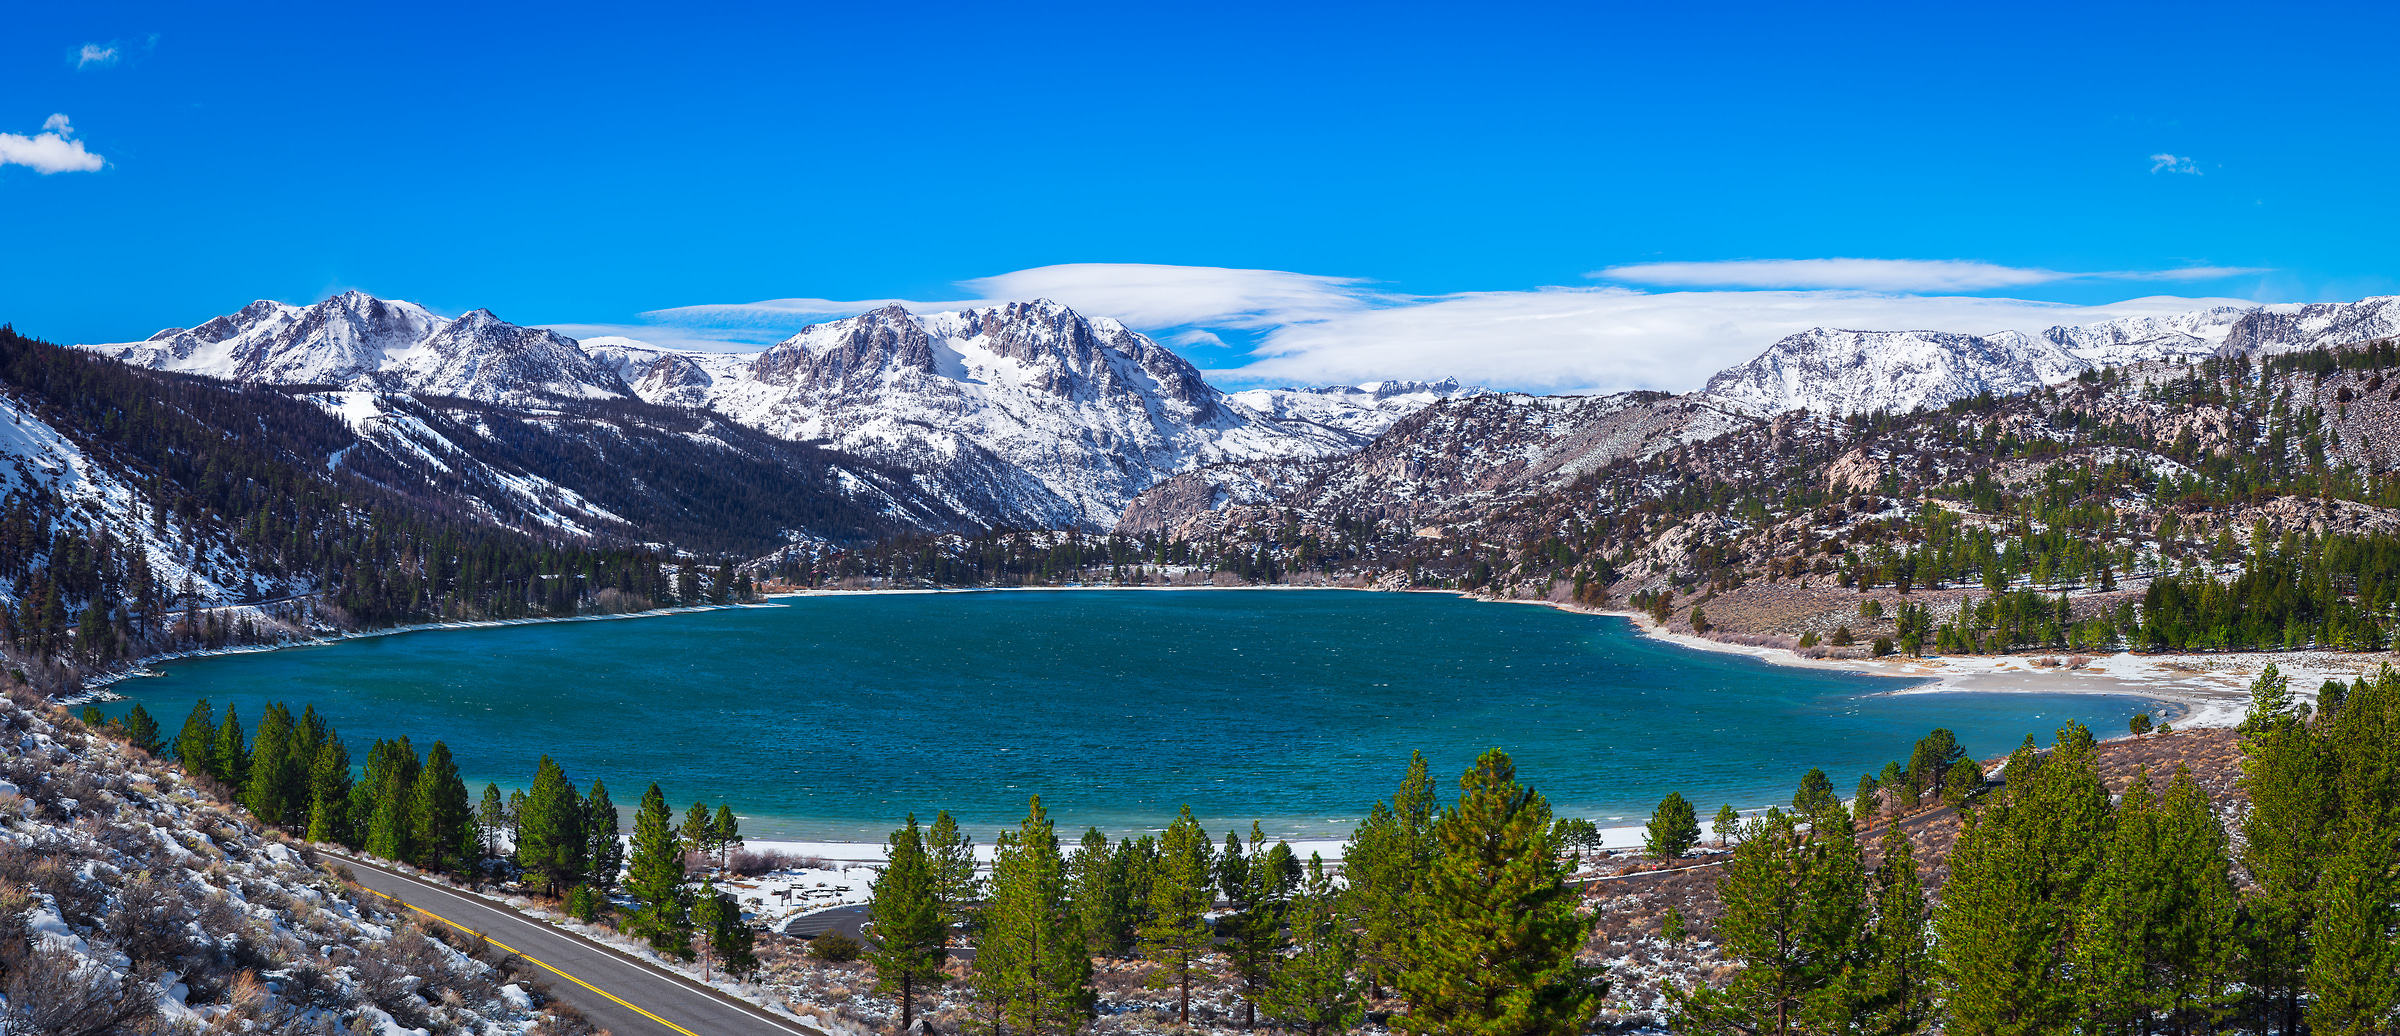 204 megapixels! A very high resolution, large-format VAST photo of a lake and mountains; inspirational landscape photograph created by Jim Tarpo in June Lake, California